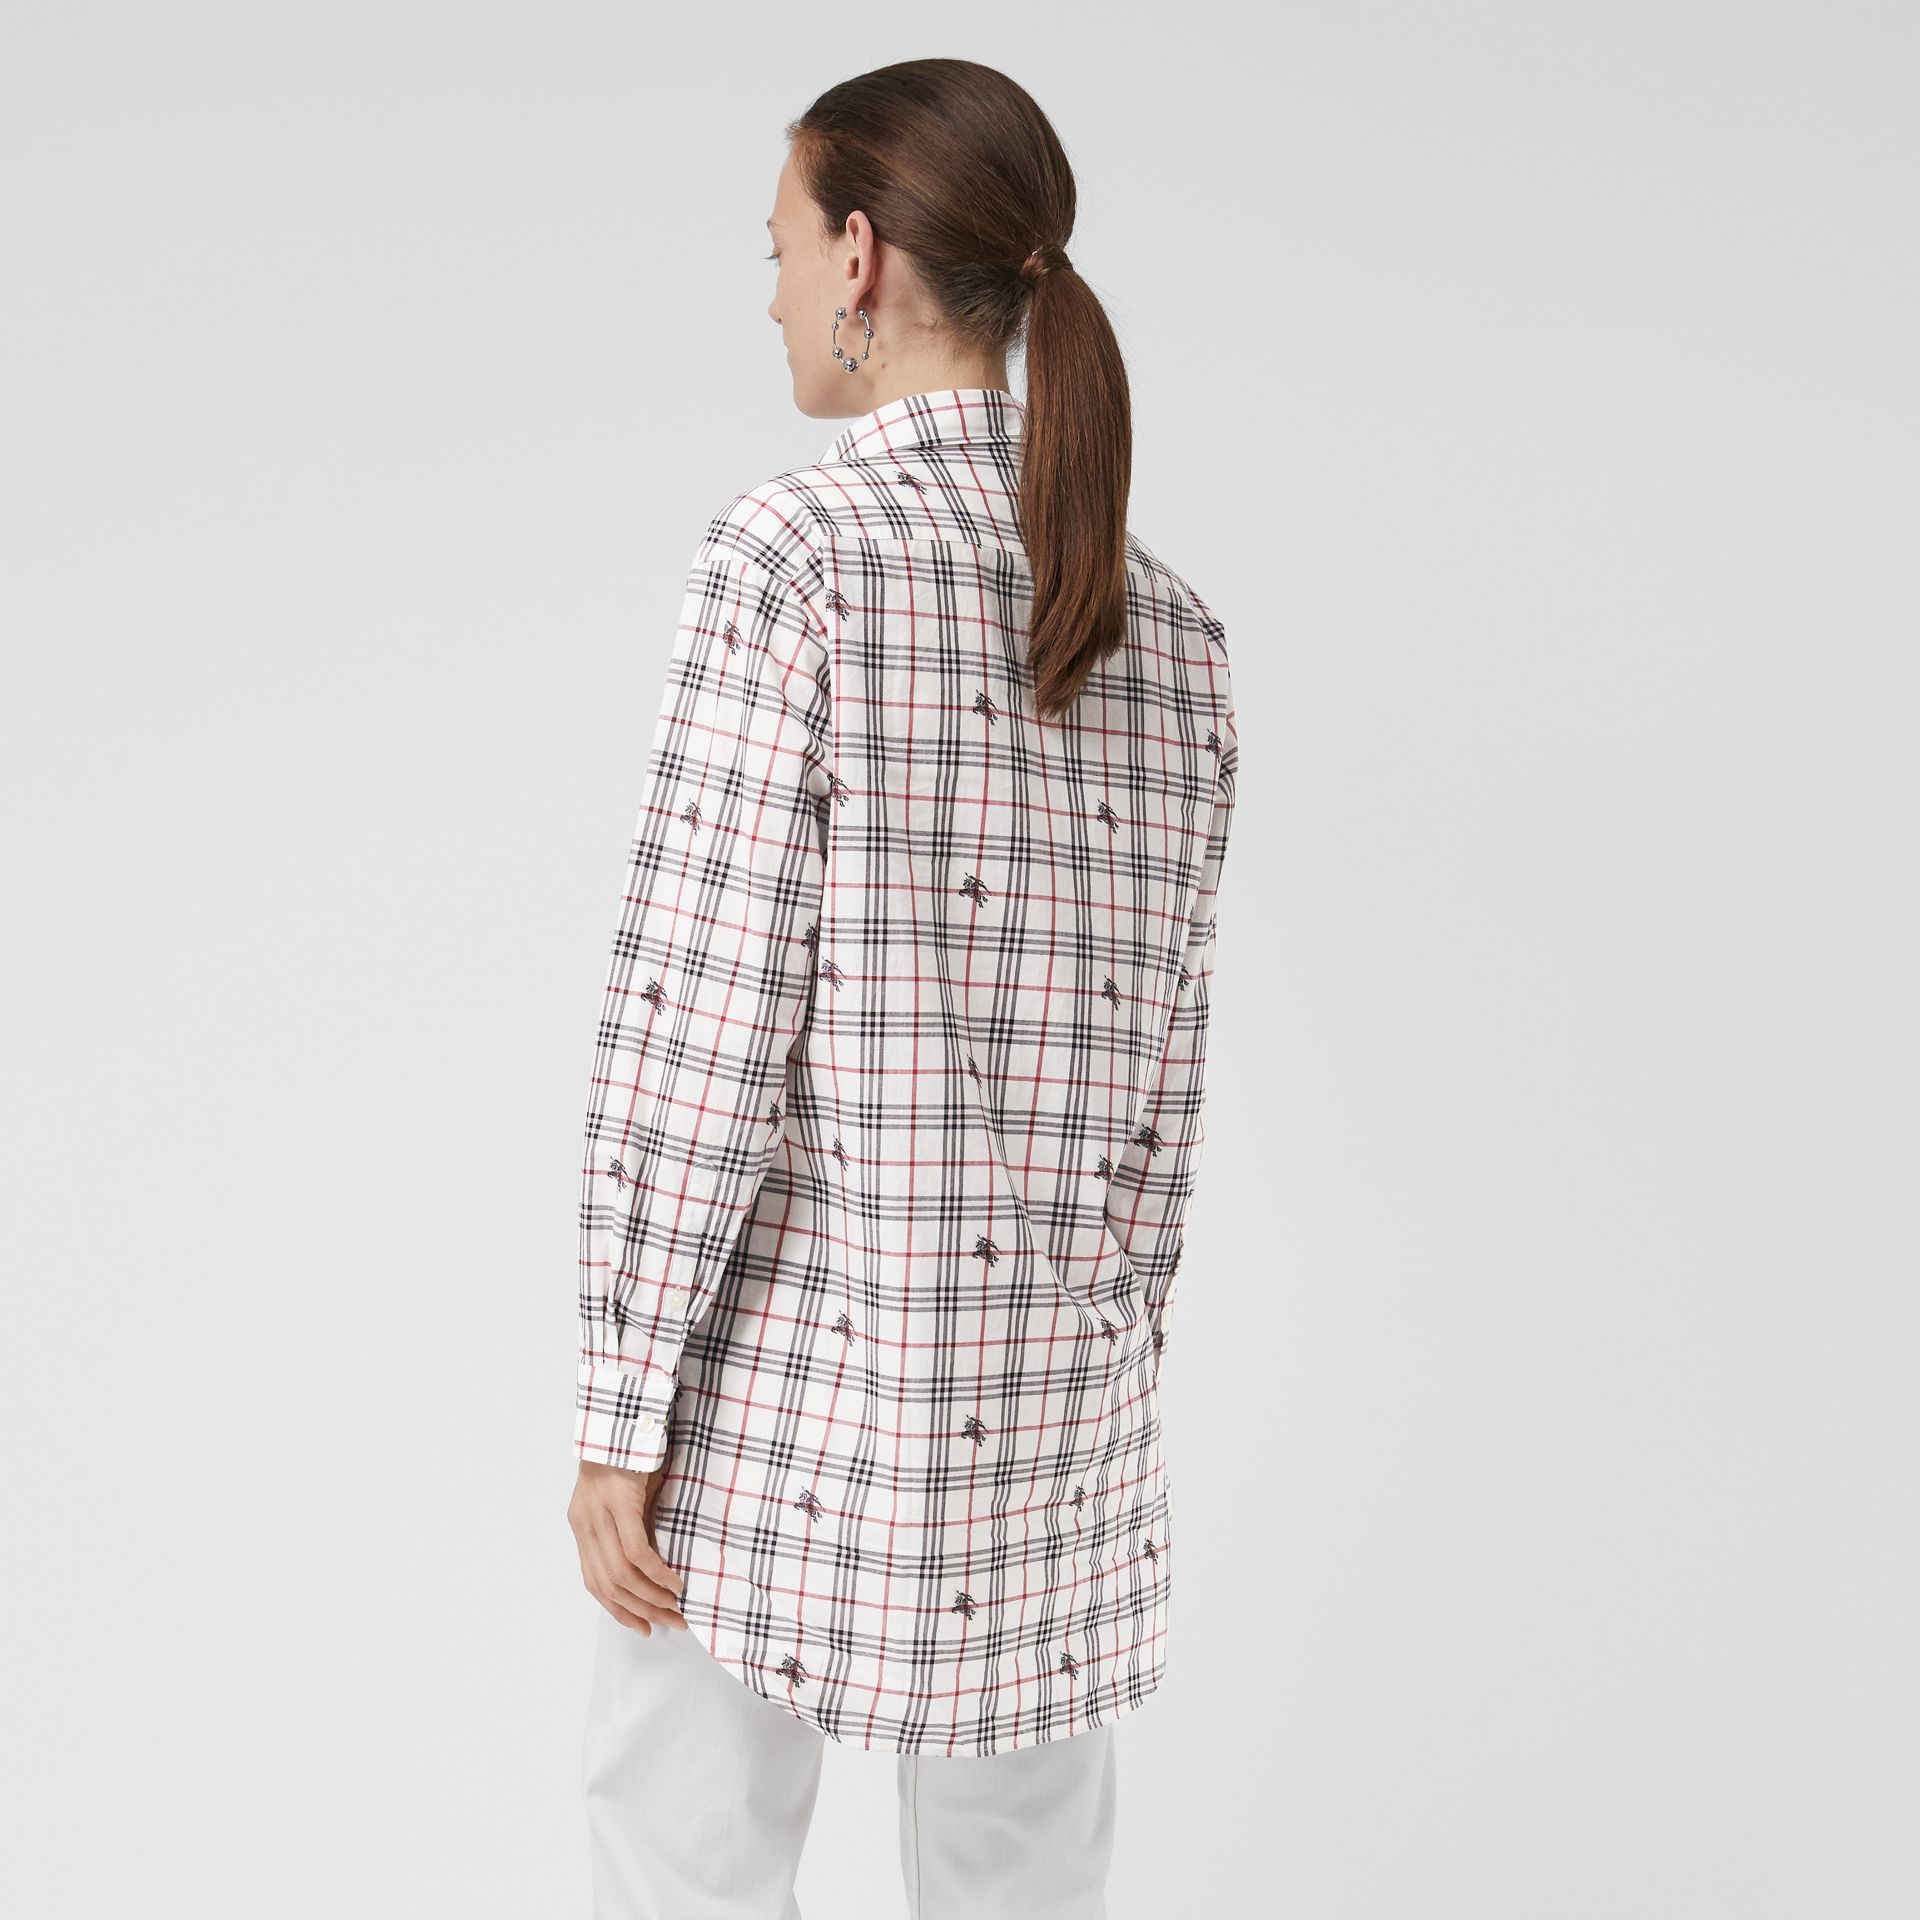 Equestrian Knight Check Cotton Shirt in Natural White - Women | Burberry Australia - gallery image 2